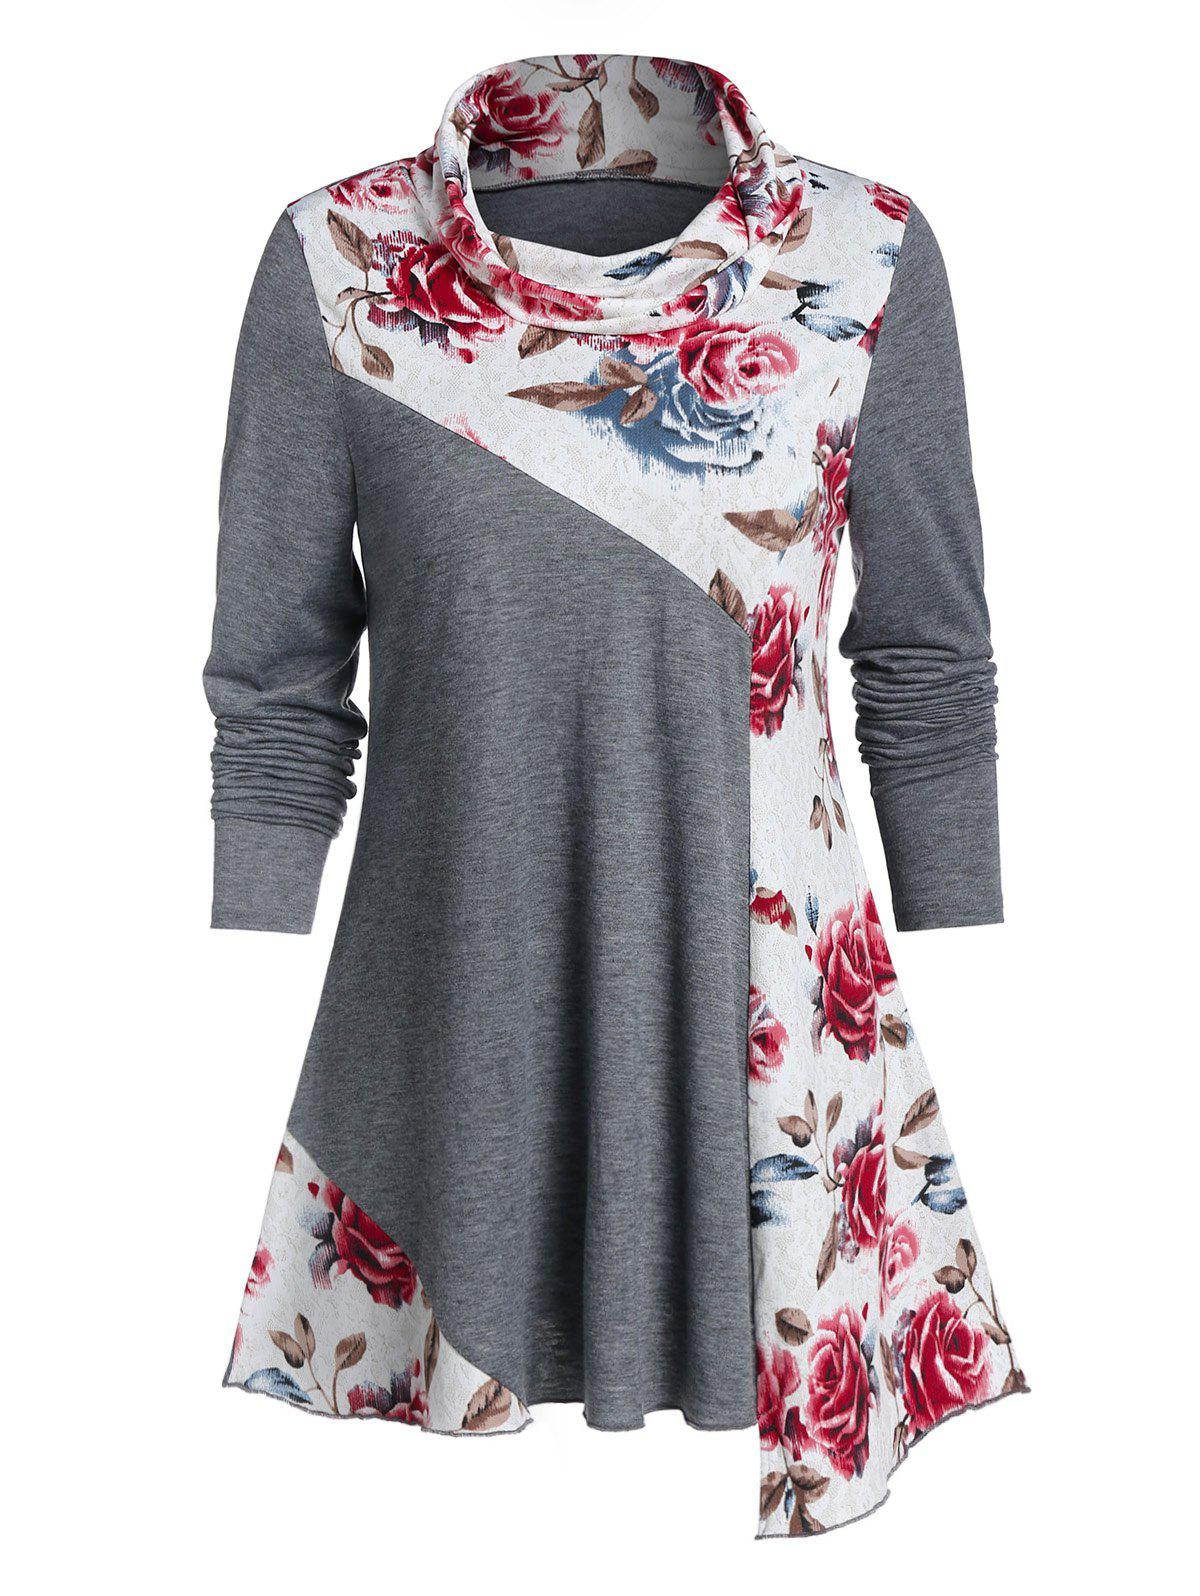 Asymmetric Flower Print Cowl Neck Long Sleeve Tee - multicolor A XL